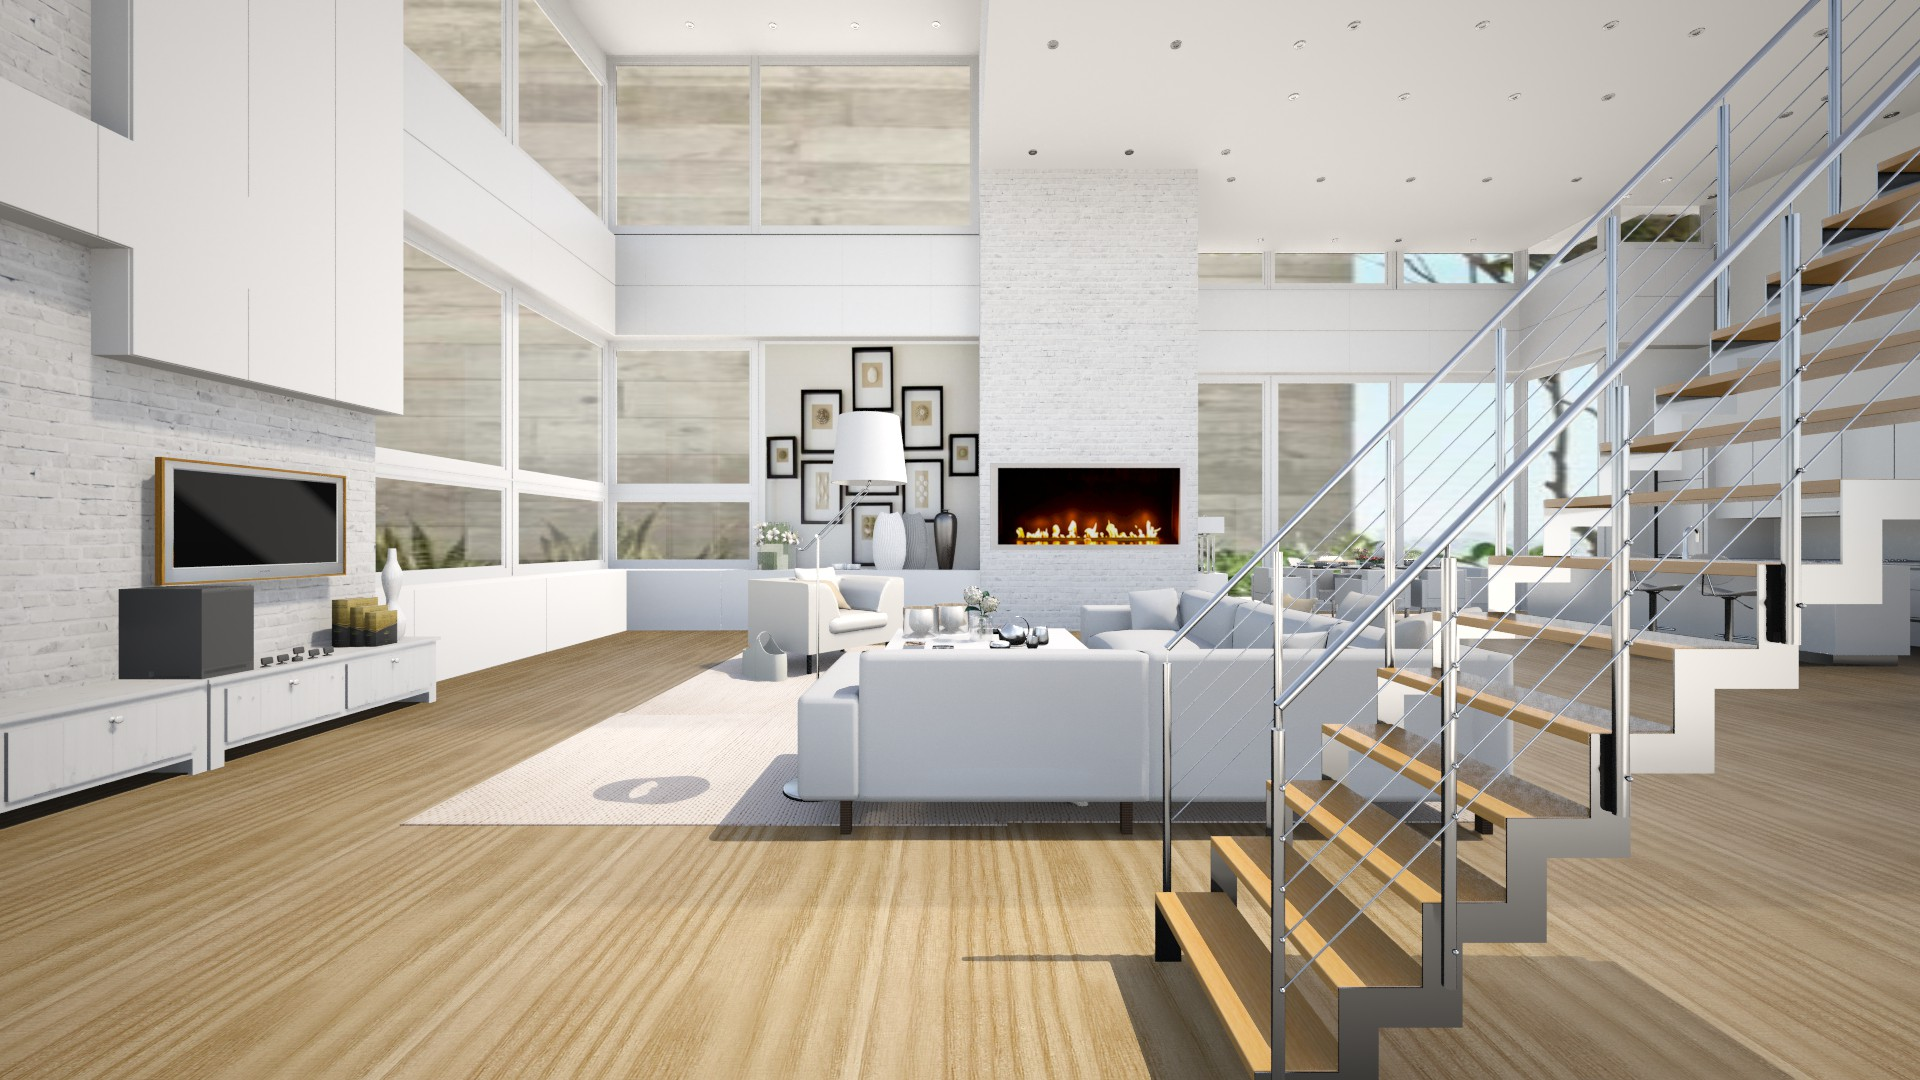 Splitlevel Home contest on Roomstyler